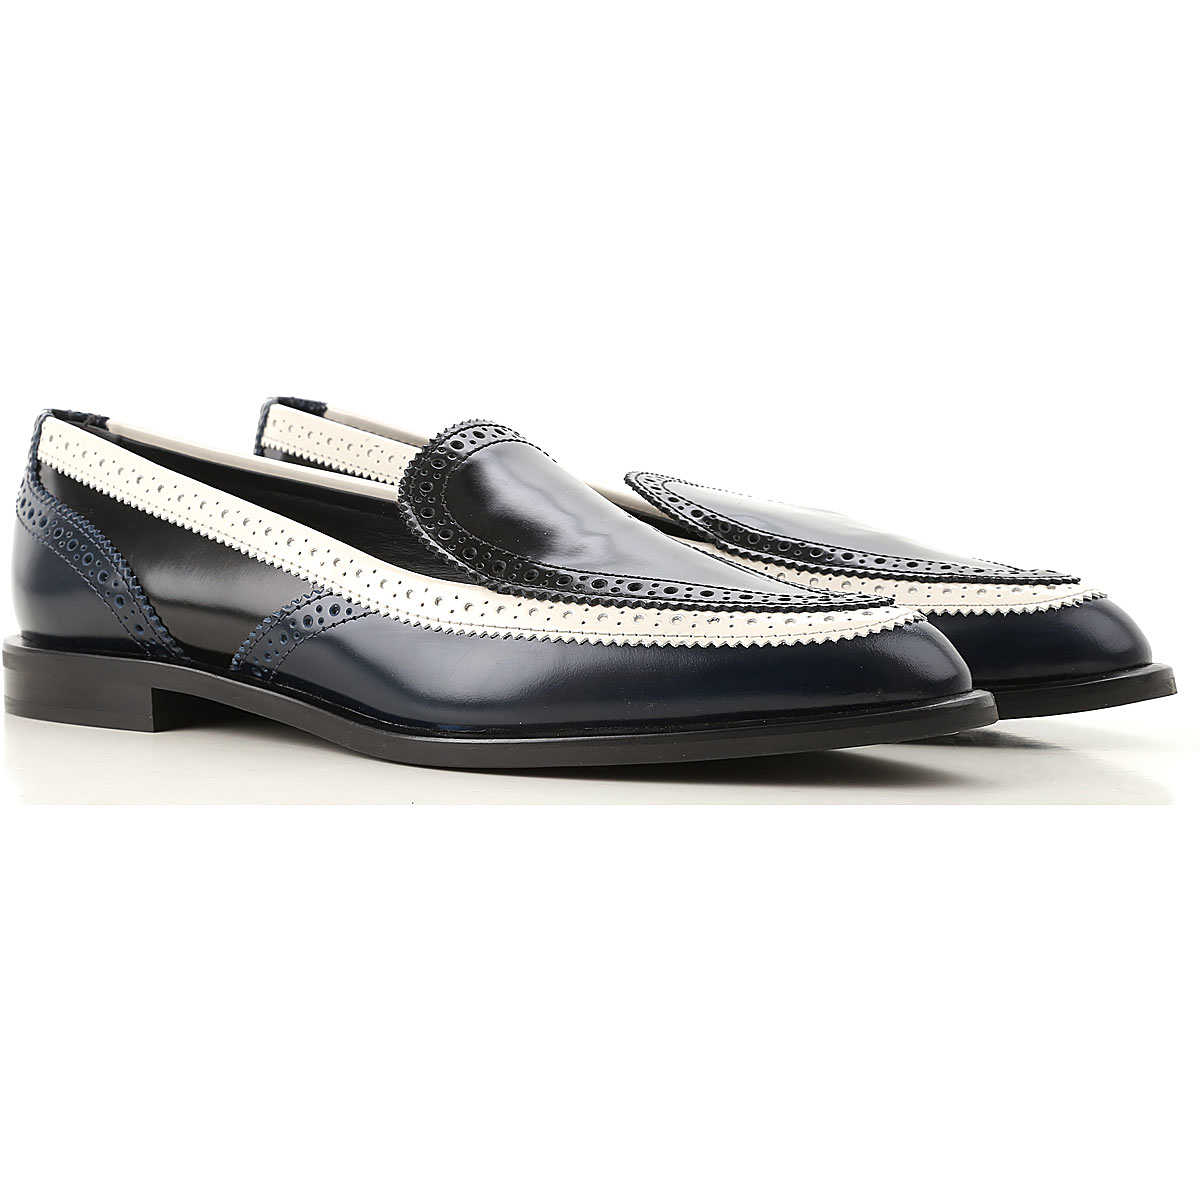 Tods Loafers for Women On Sale Midnight Blue UK - GOOFASH